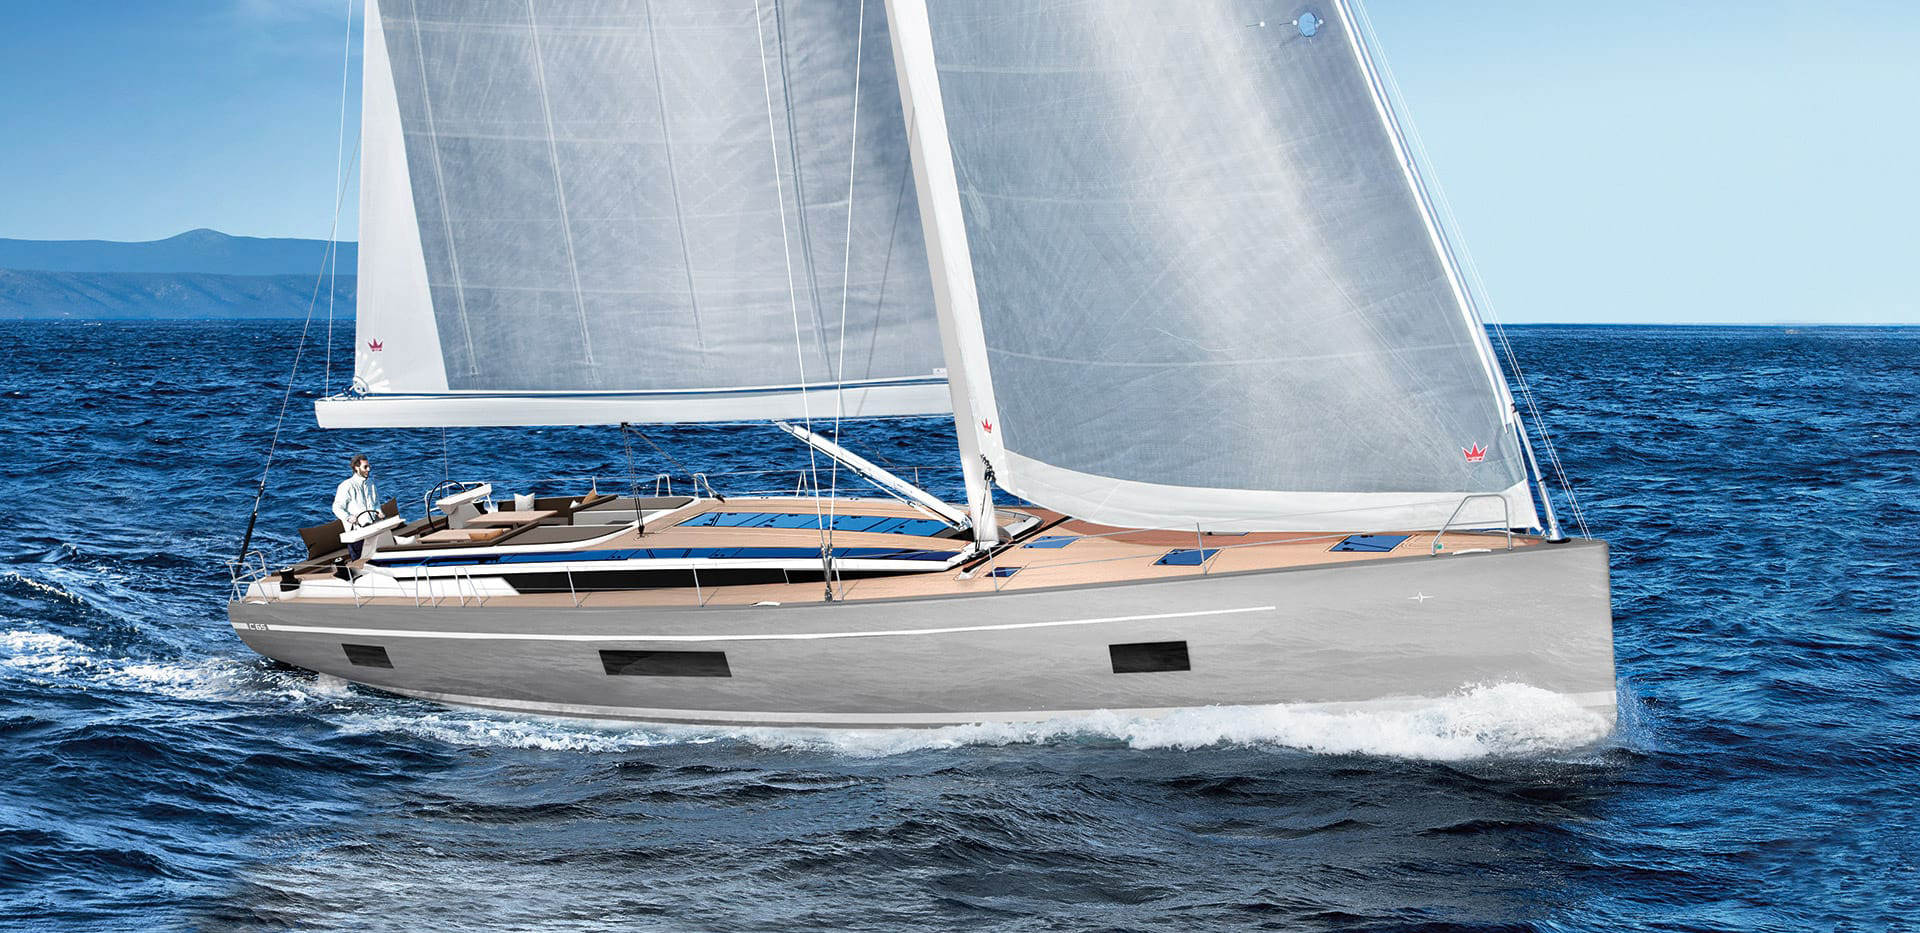 BAVARIA C65 - The largest yacht ever built by the shipyard